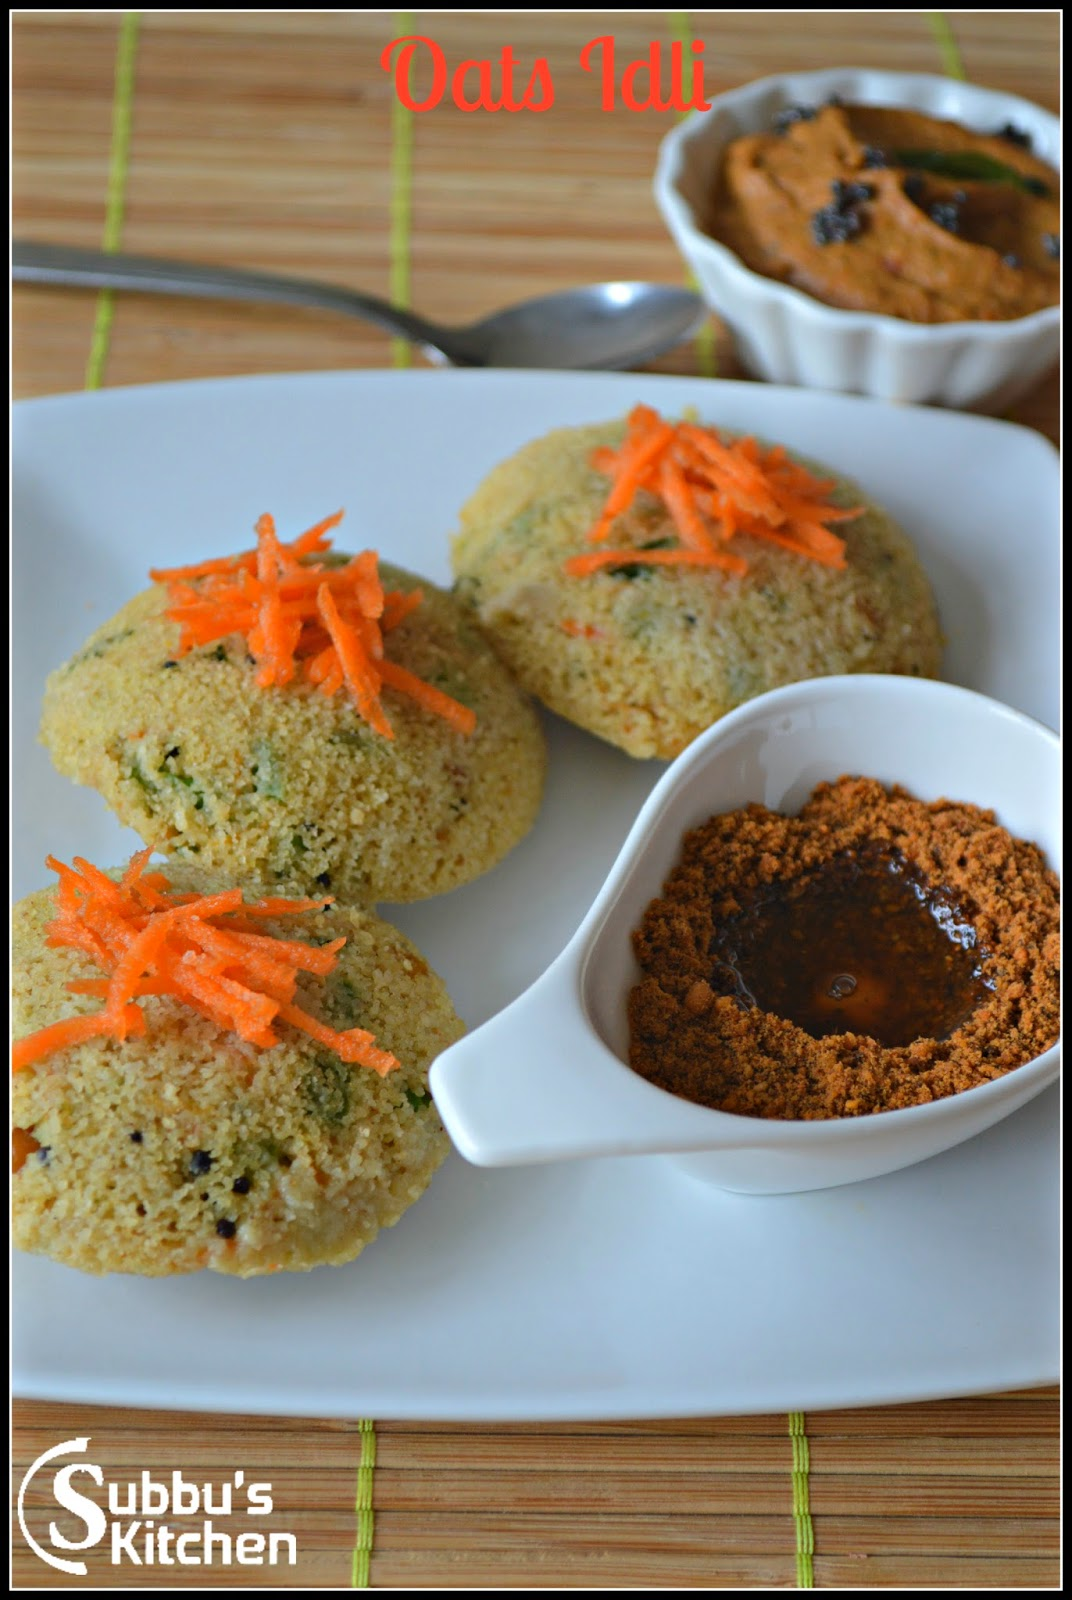 Instant Vegetable Oats Idli